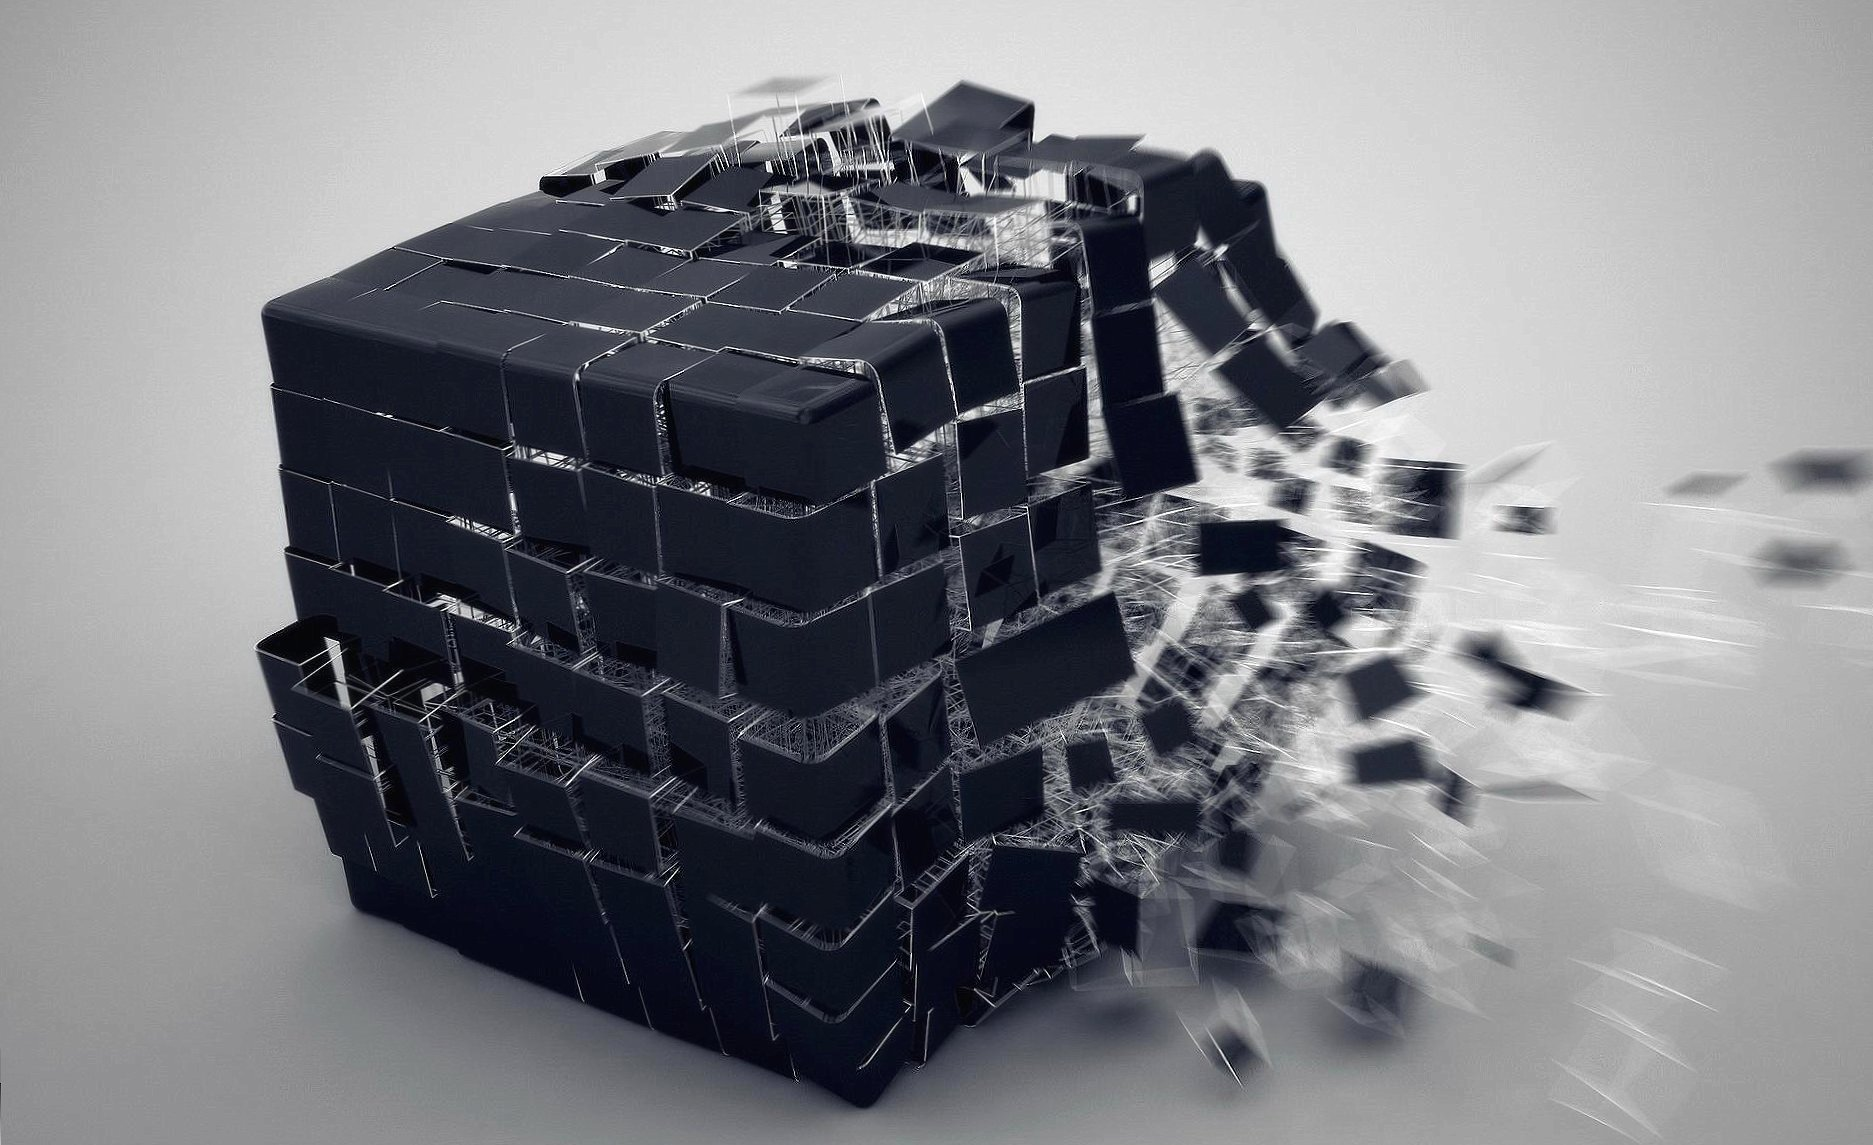 Black cube explosion 3d wallpapers HD quality